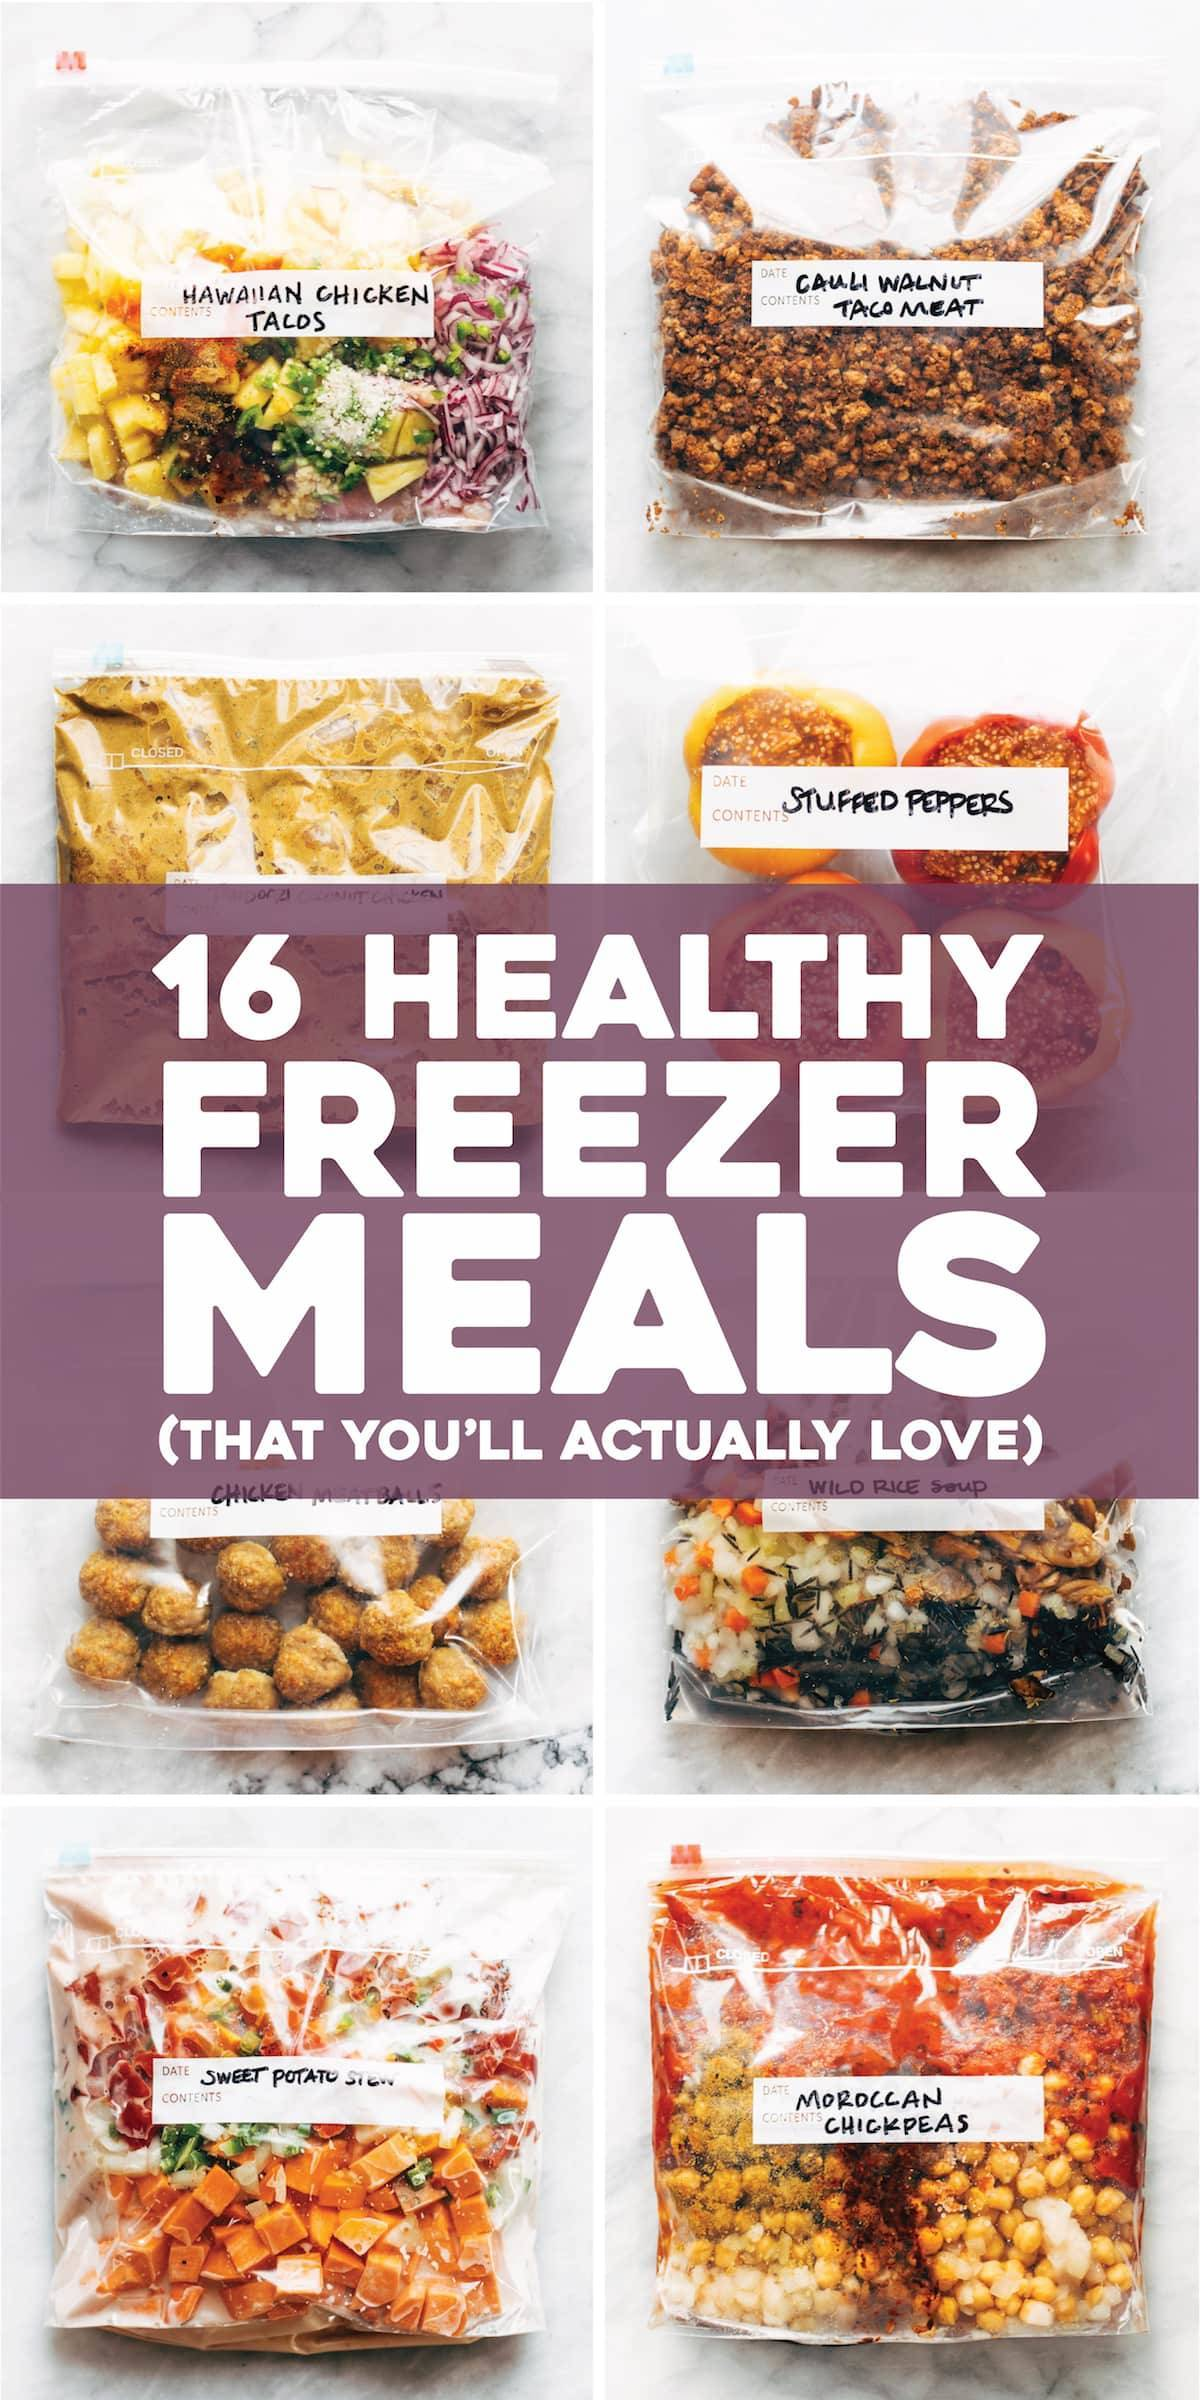 16 Healthy Freezer Meals (That You'll Actually Love)